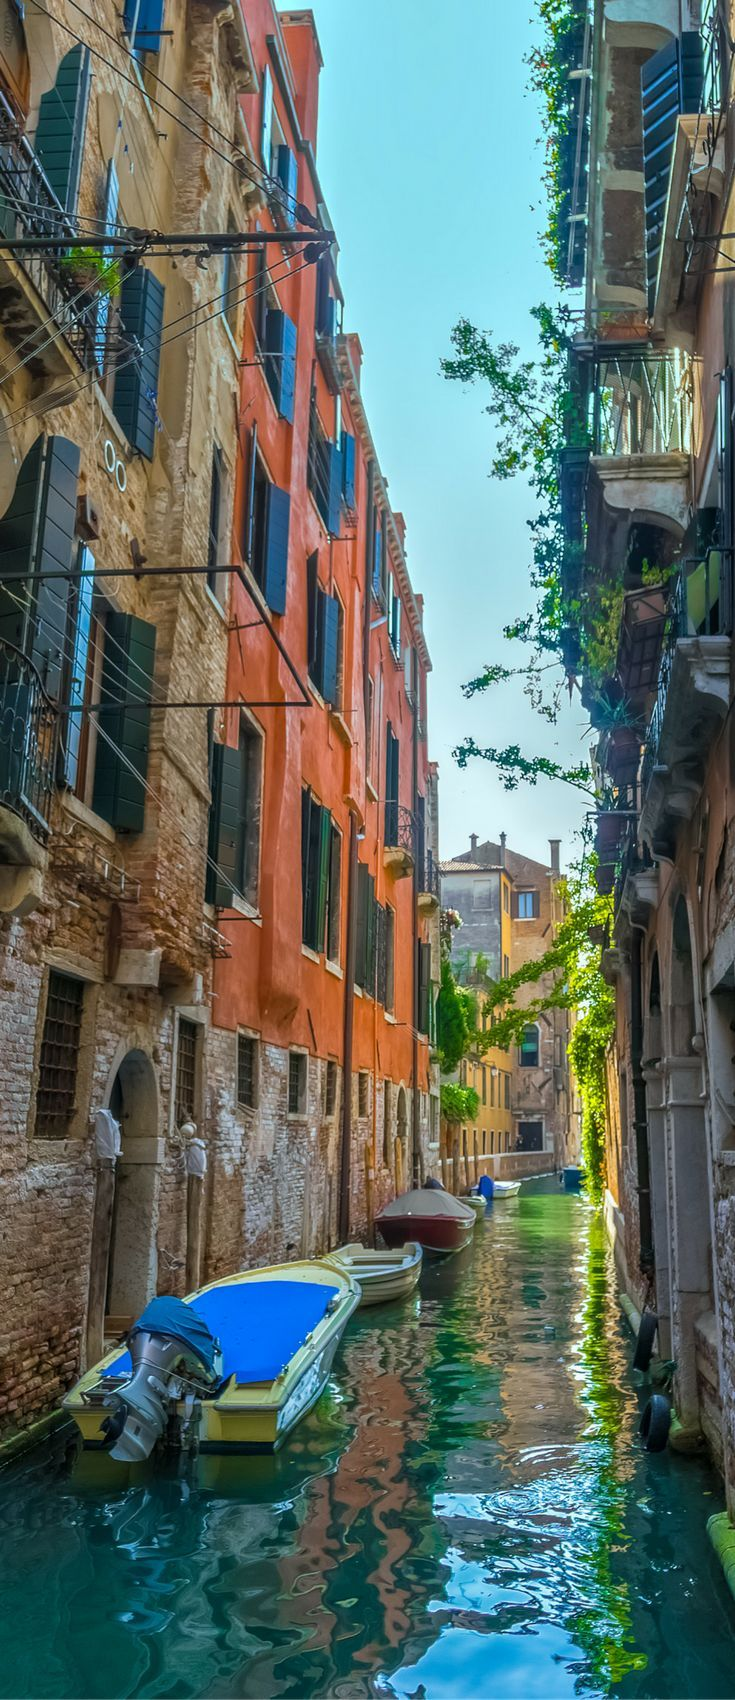 Italy is one of the top 10 most popular places to honeymoon. Find out what the other 9 are! Click through to see them all!